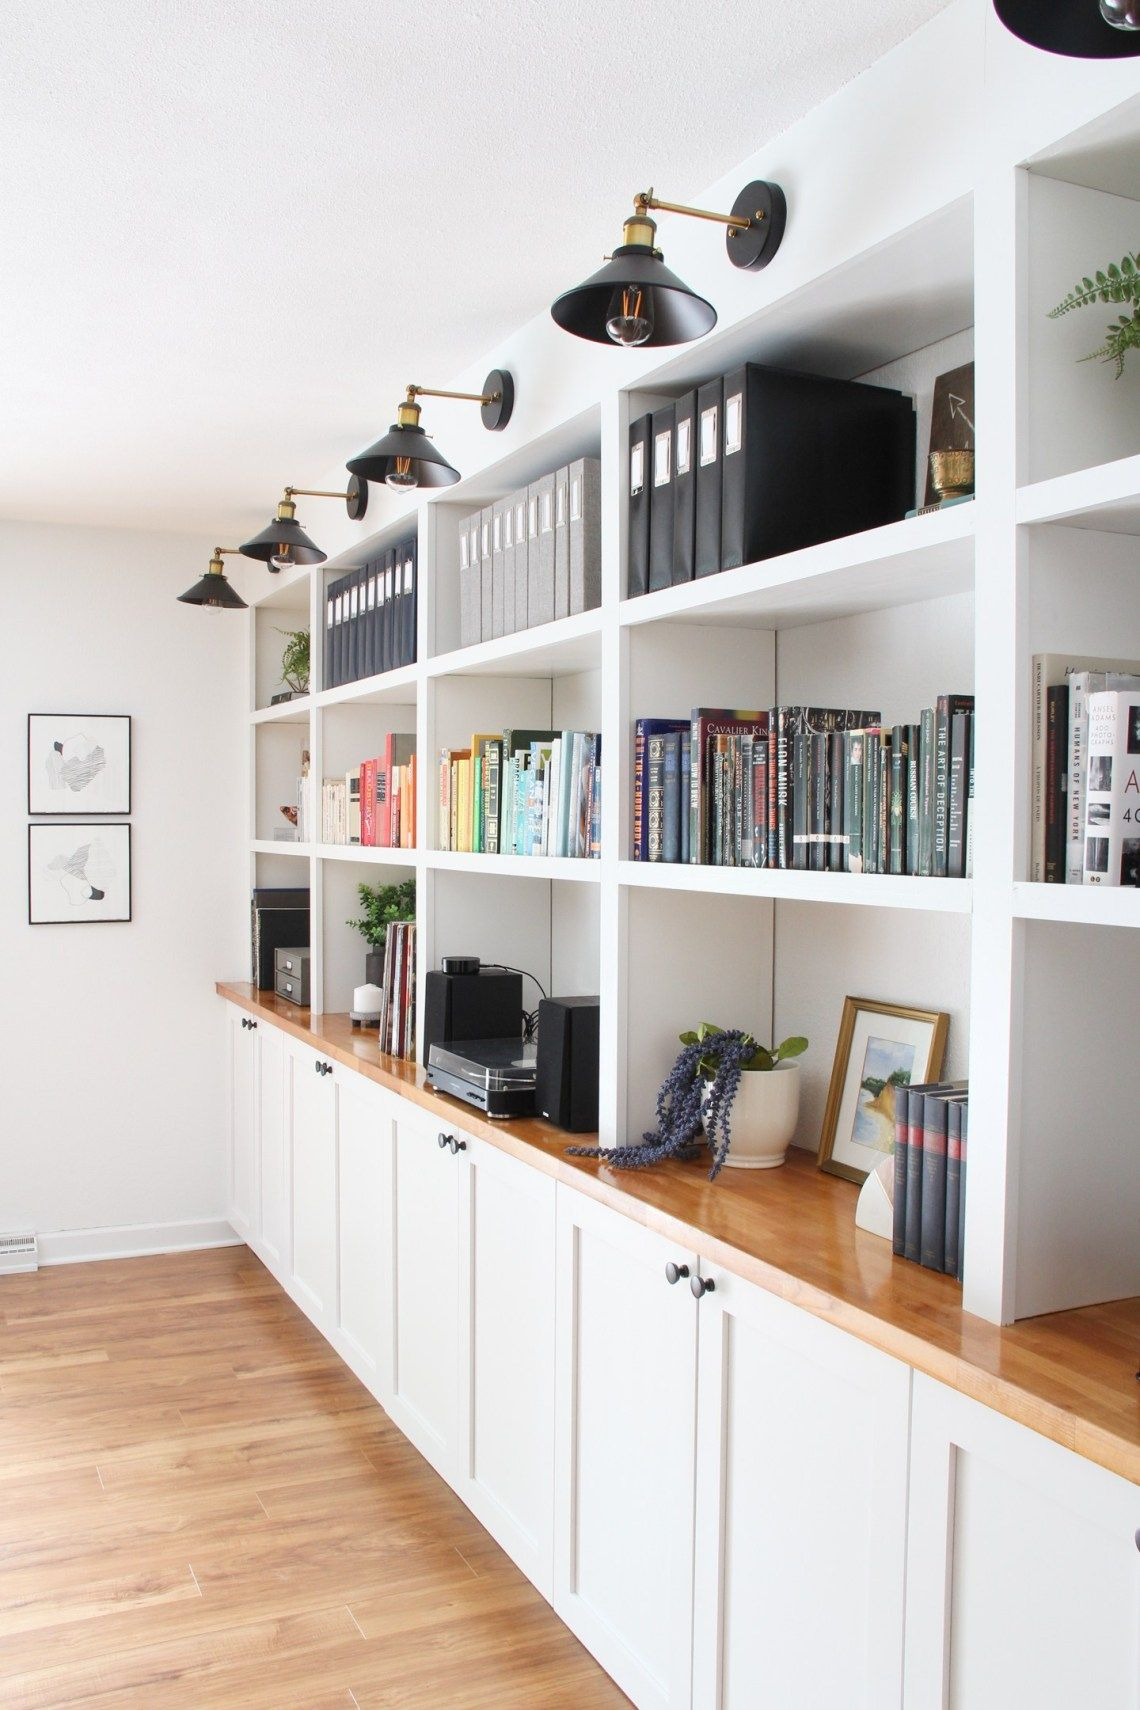 Ikea Built In Hacks That Will Save You Money Ikea Built In Home